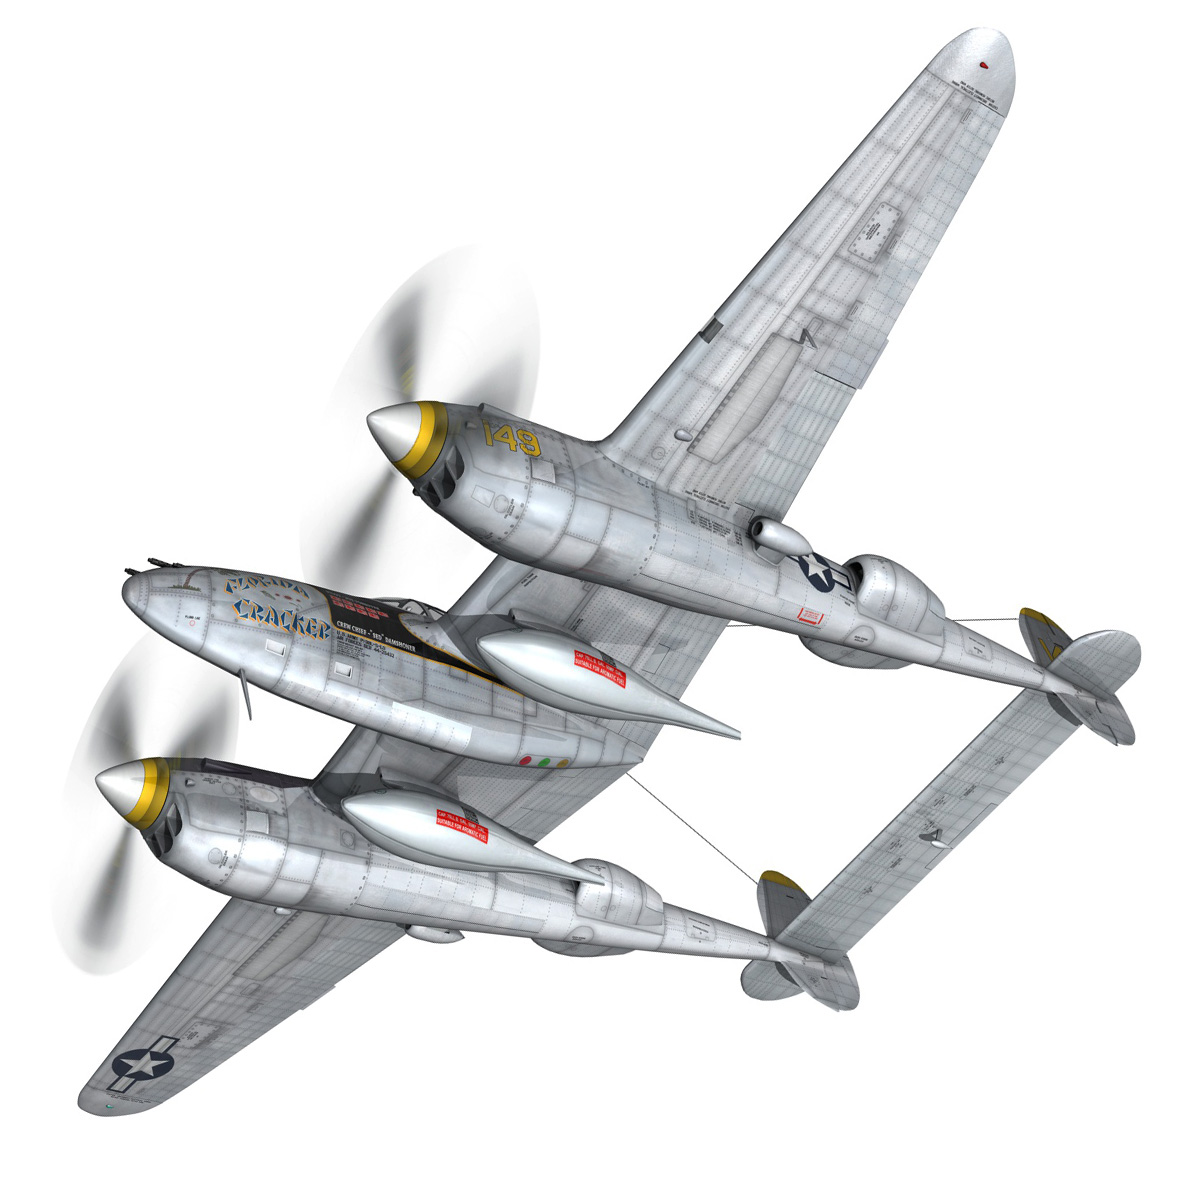 lockheed p-38 lightning – florida cracker 3d model fbx c4d lwo obj 279422